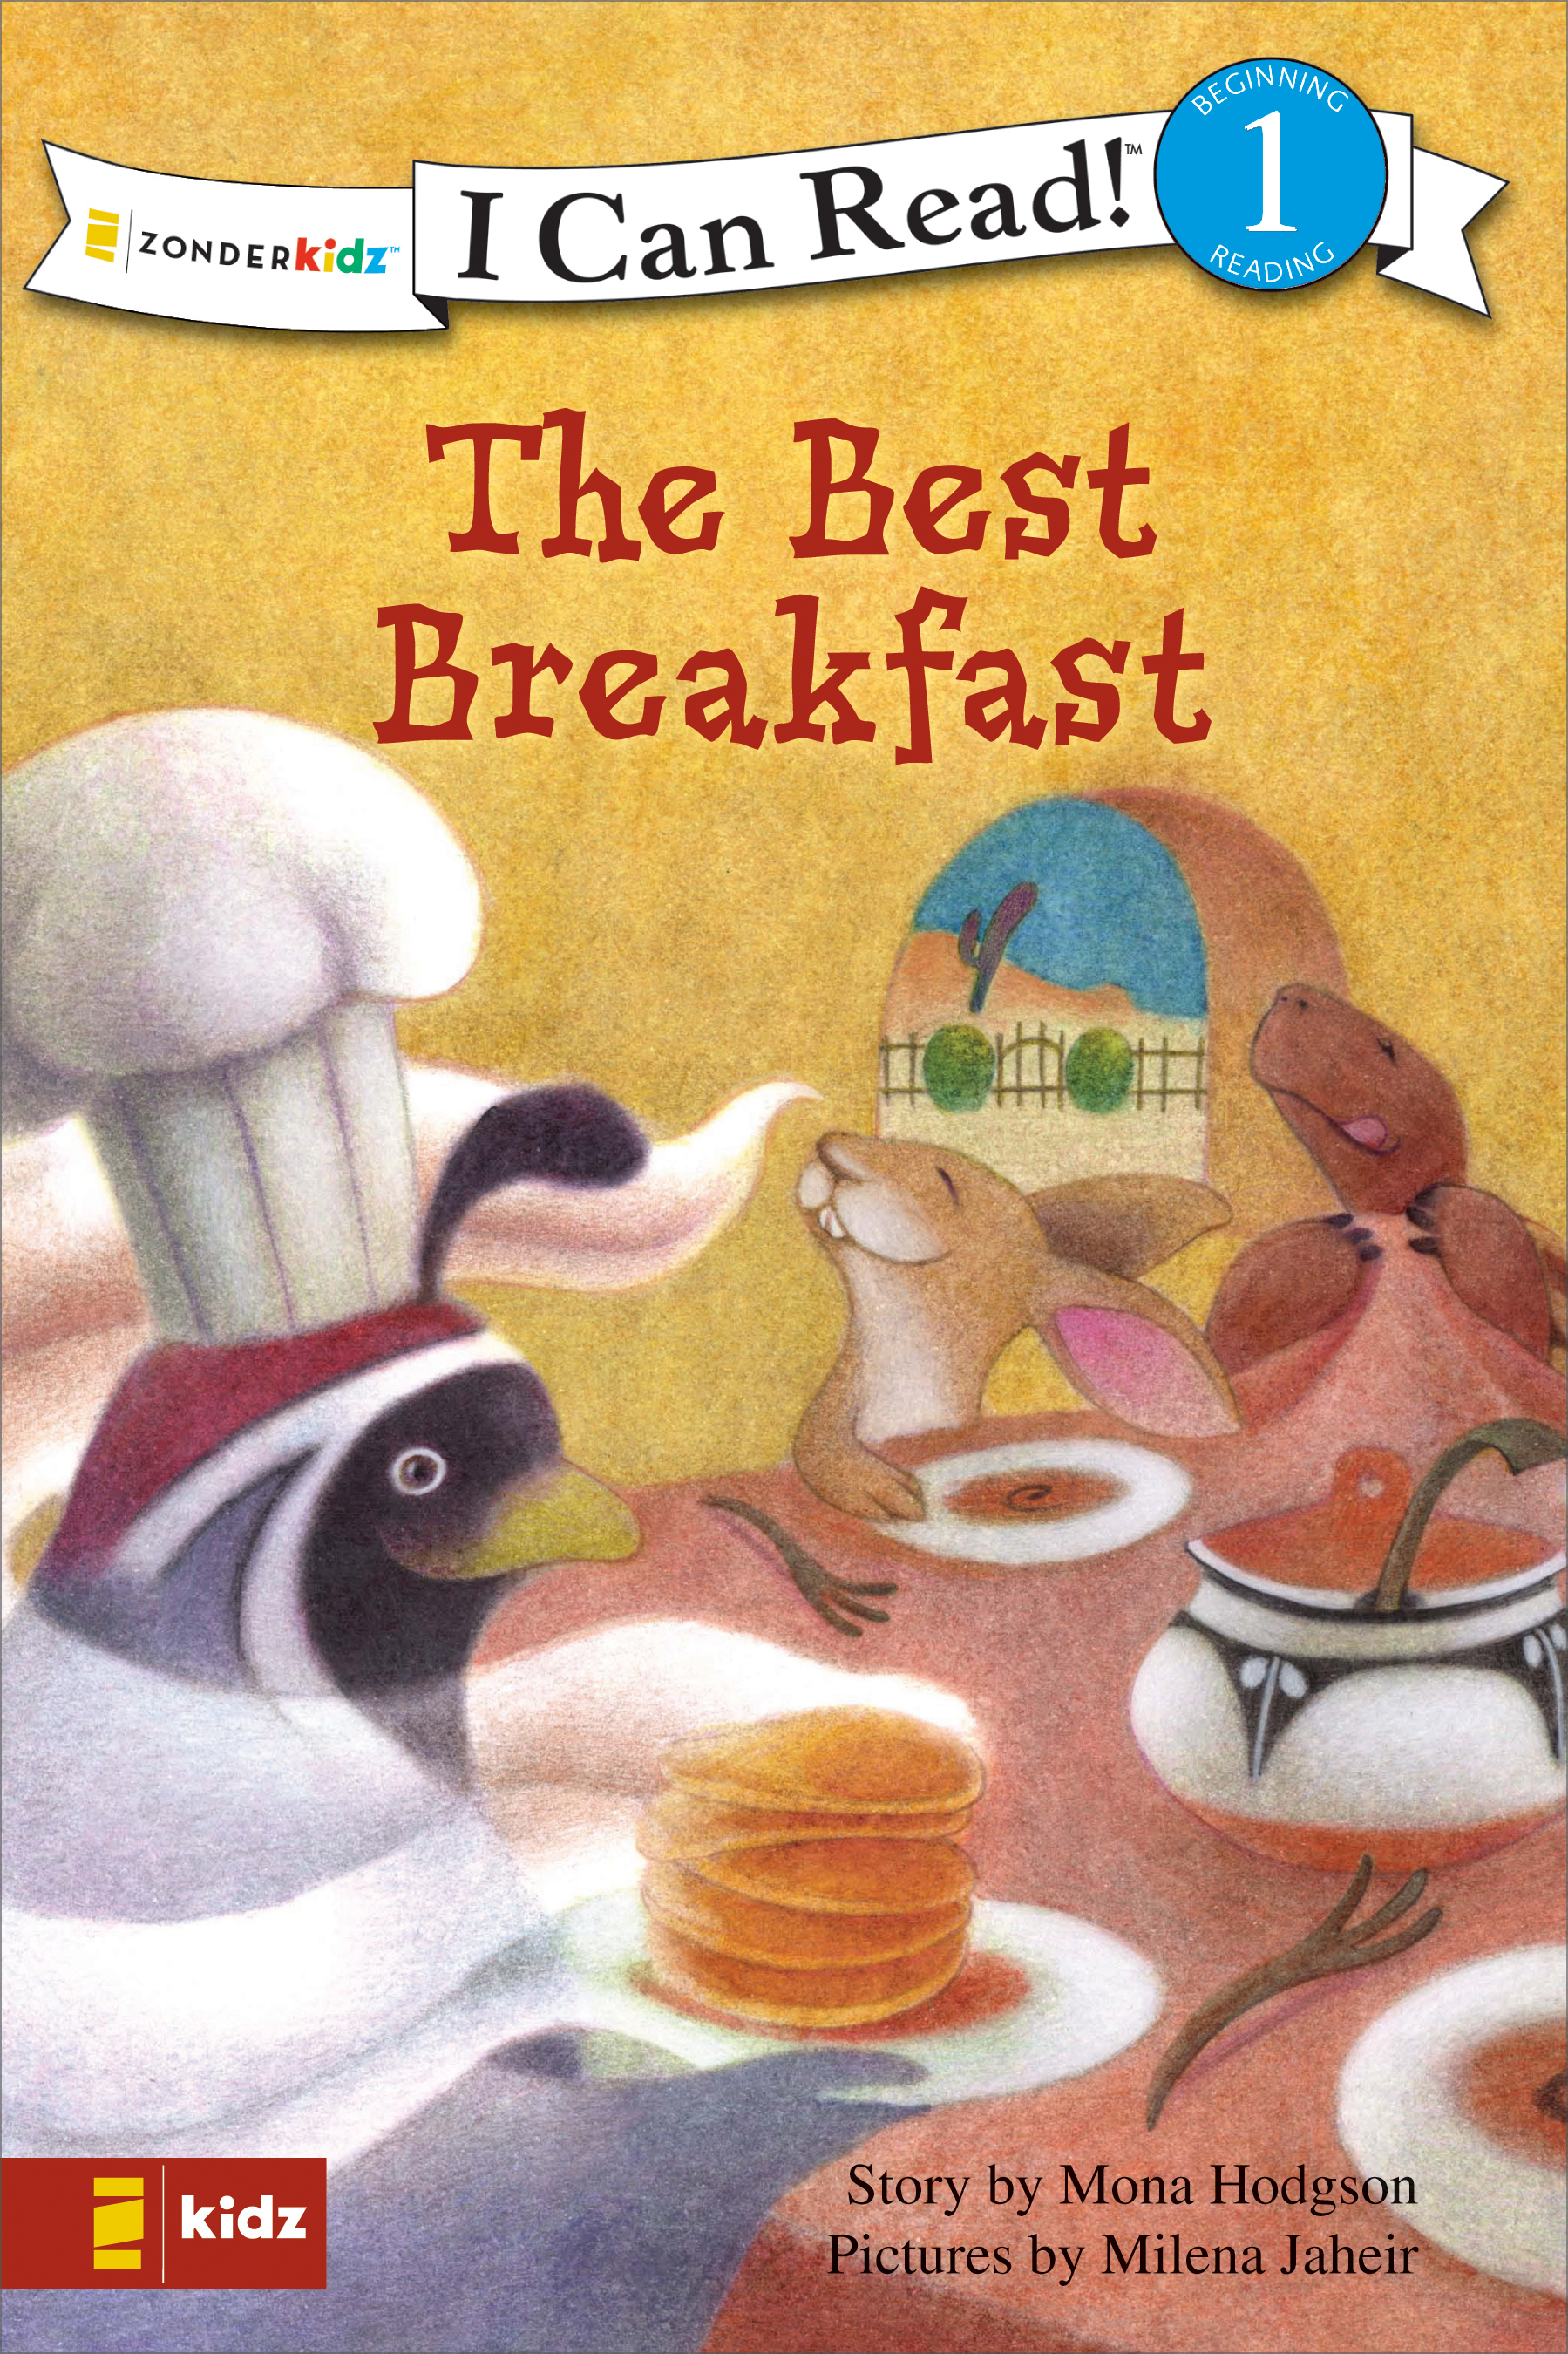 The Best Breakfast | Mona Hodgson.com